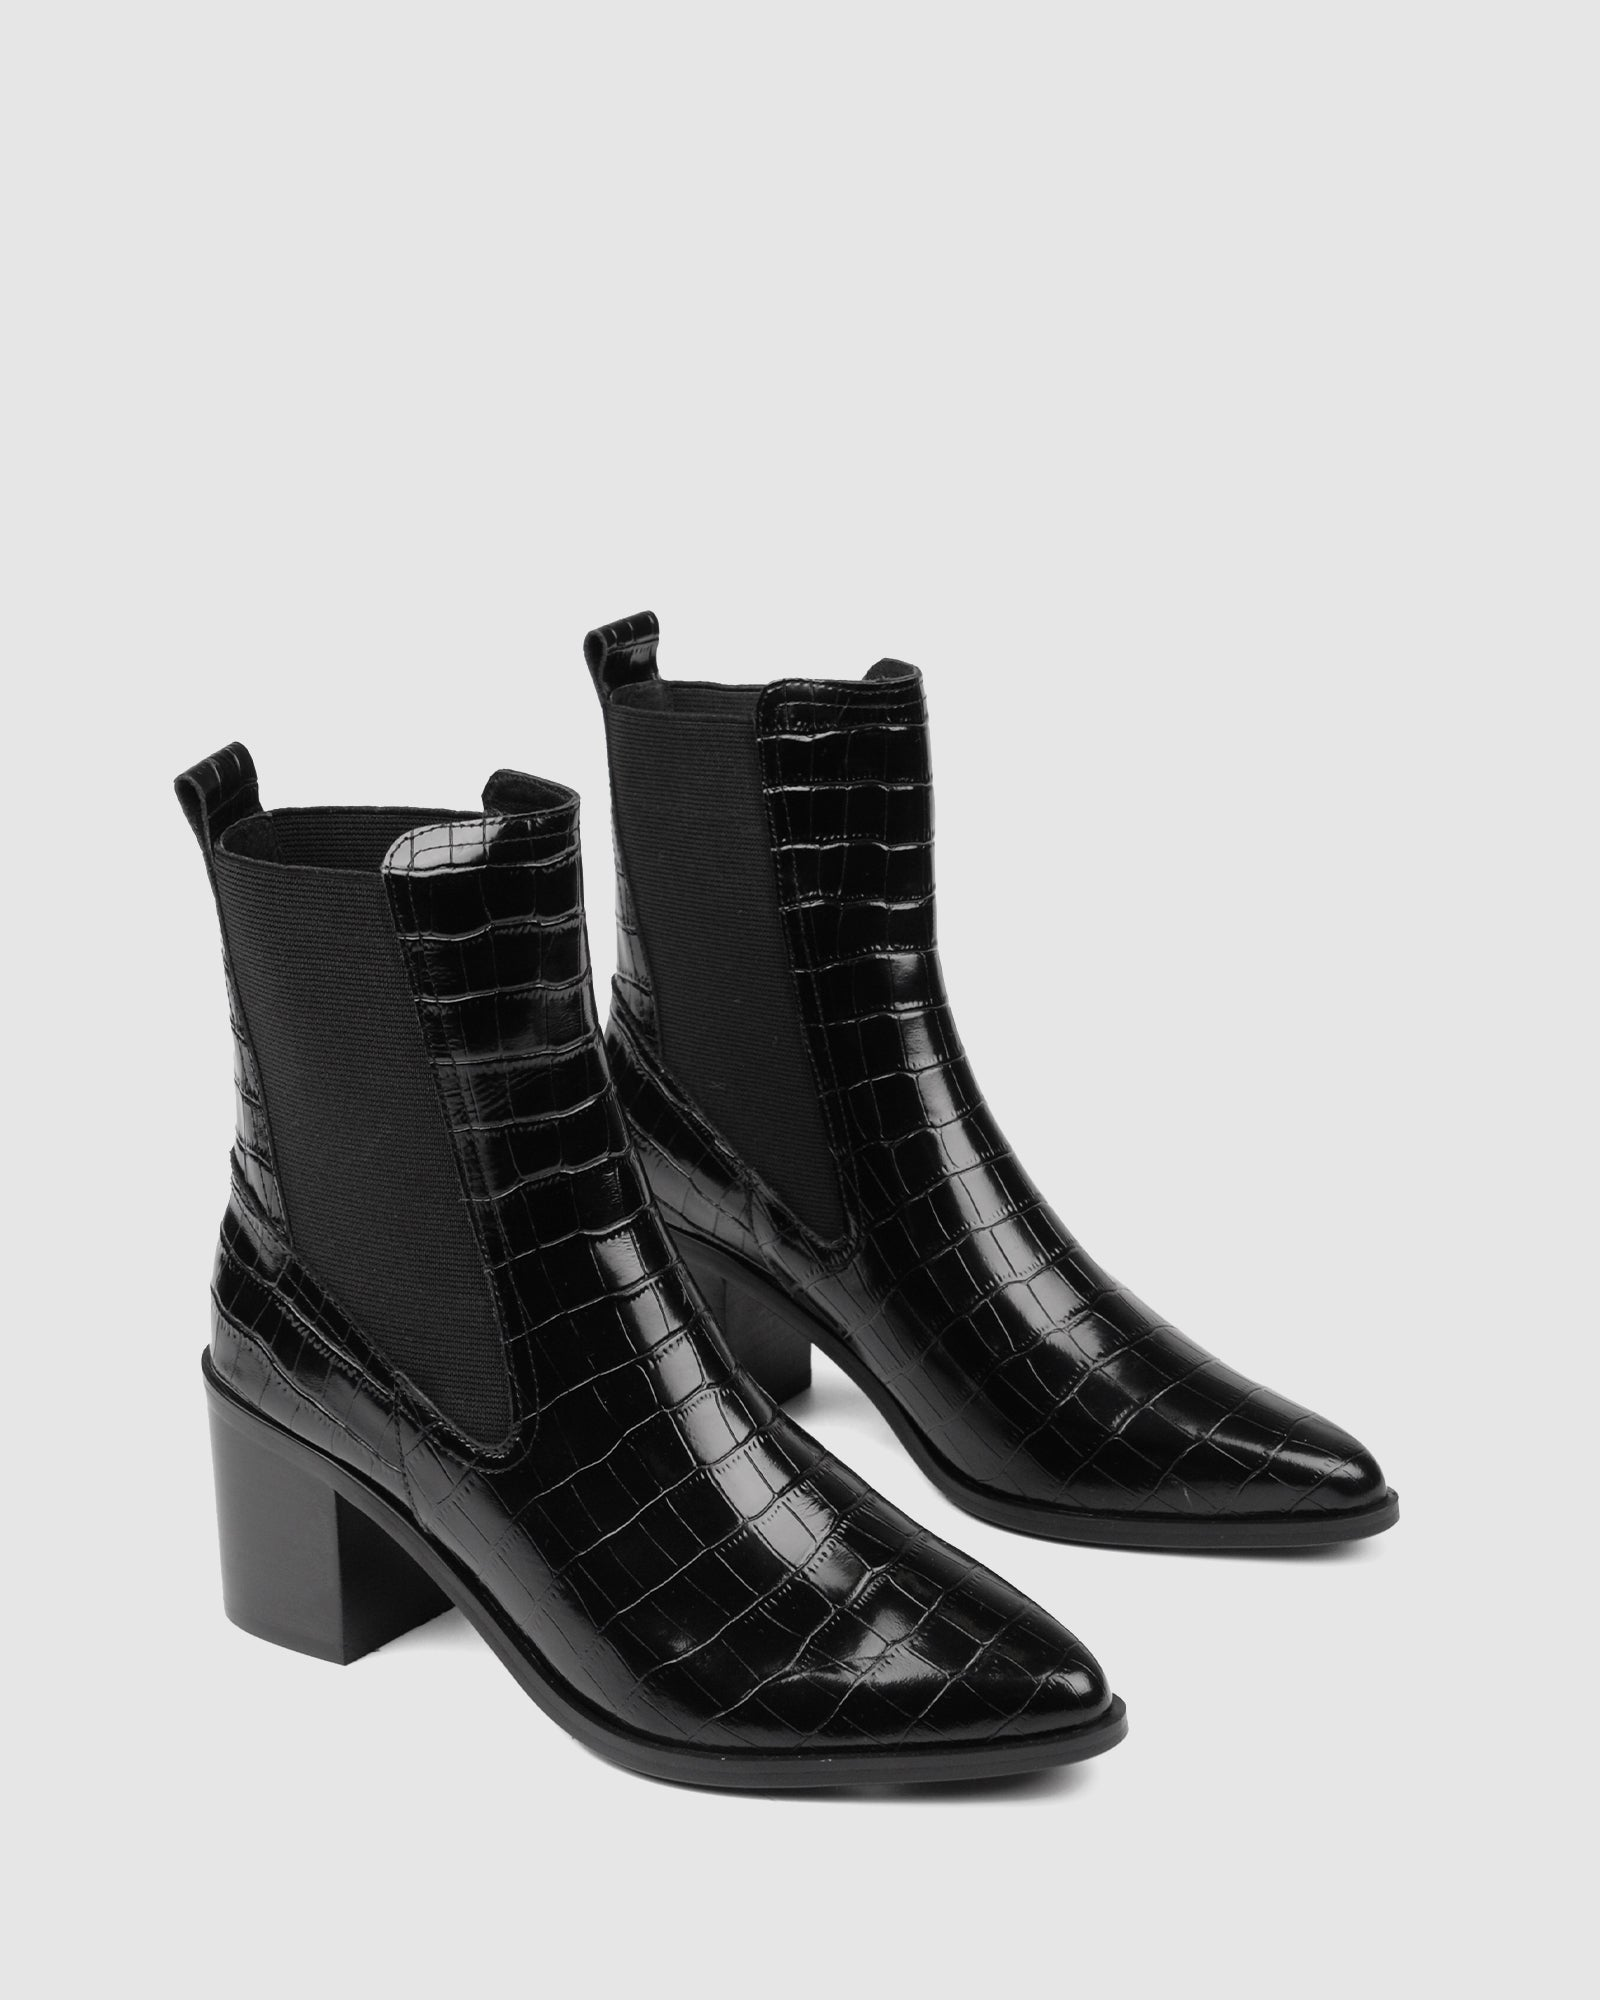 ACE MID ANKLE BOOTS BLACK CROC